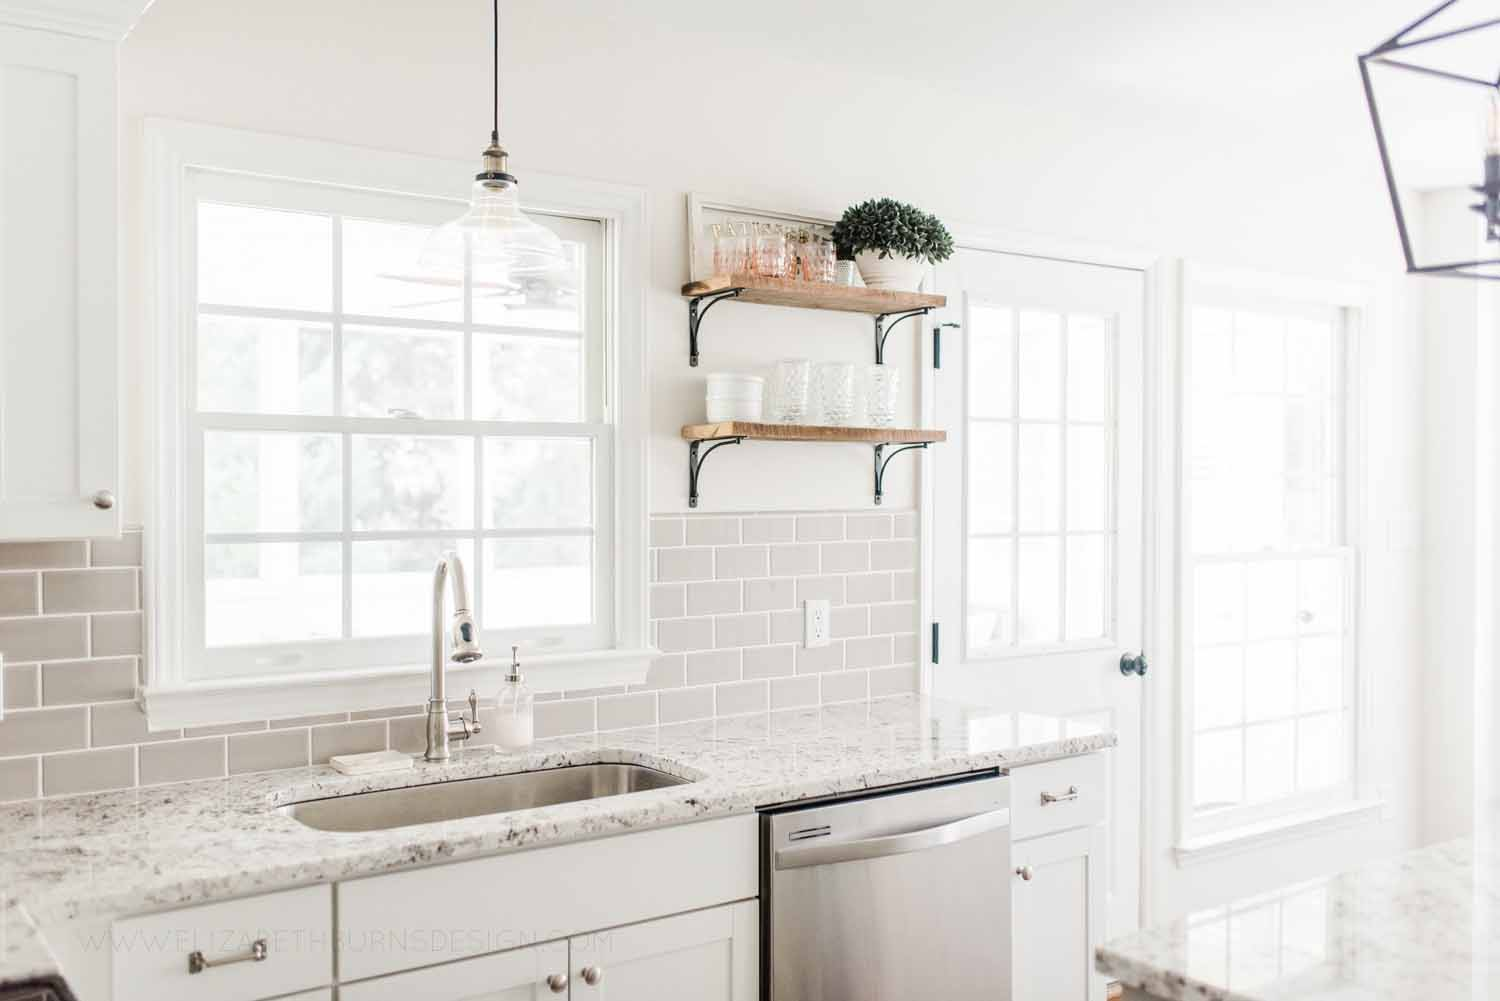 Elizabeth Burns Design Raleigh Interior Designer 1990s house remodel before and after Benjamin Moore Classic Gray 1548 Arcadia White Shaker Cabinets Gray Subway Tile Backsplash (9).jpg